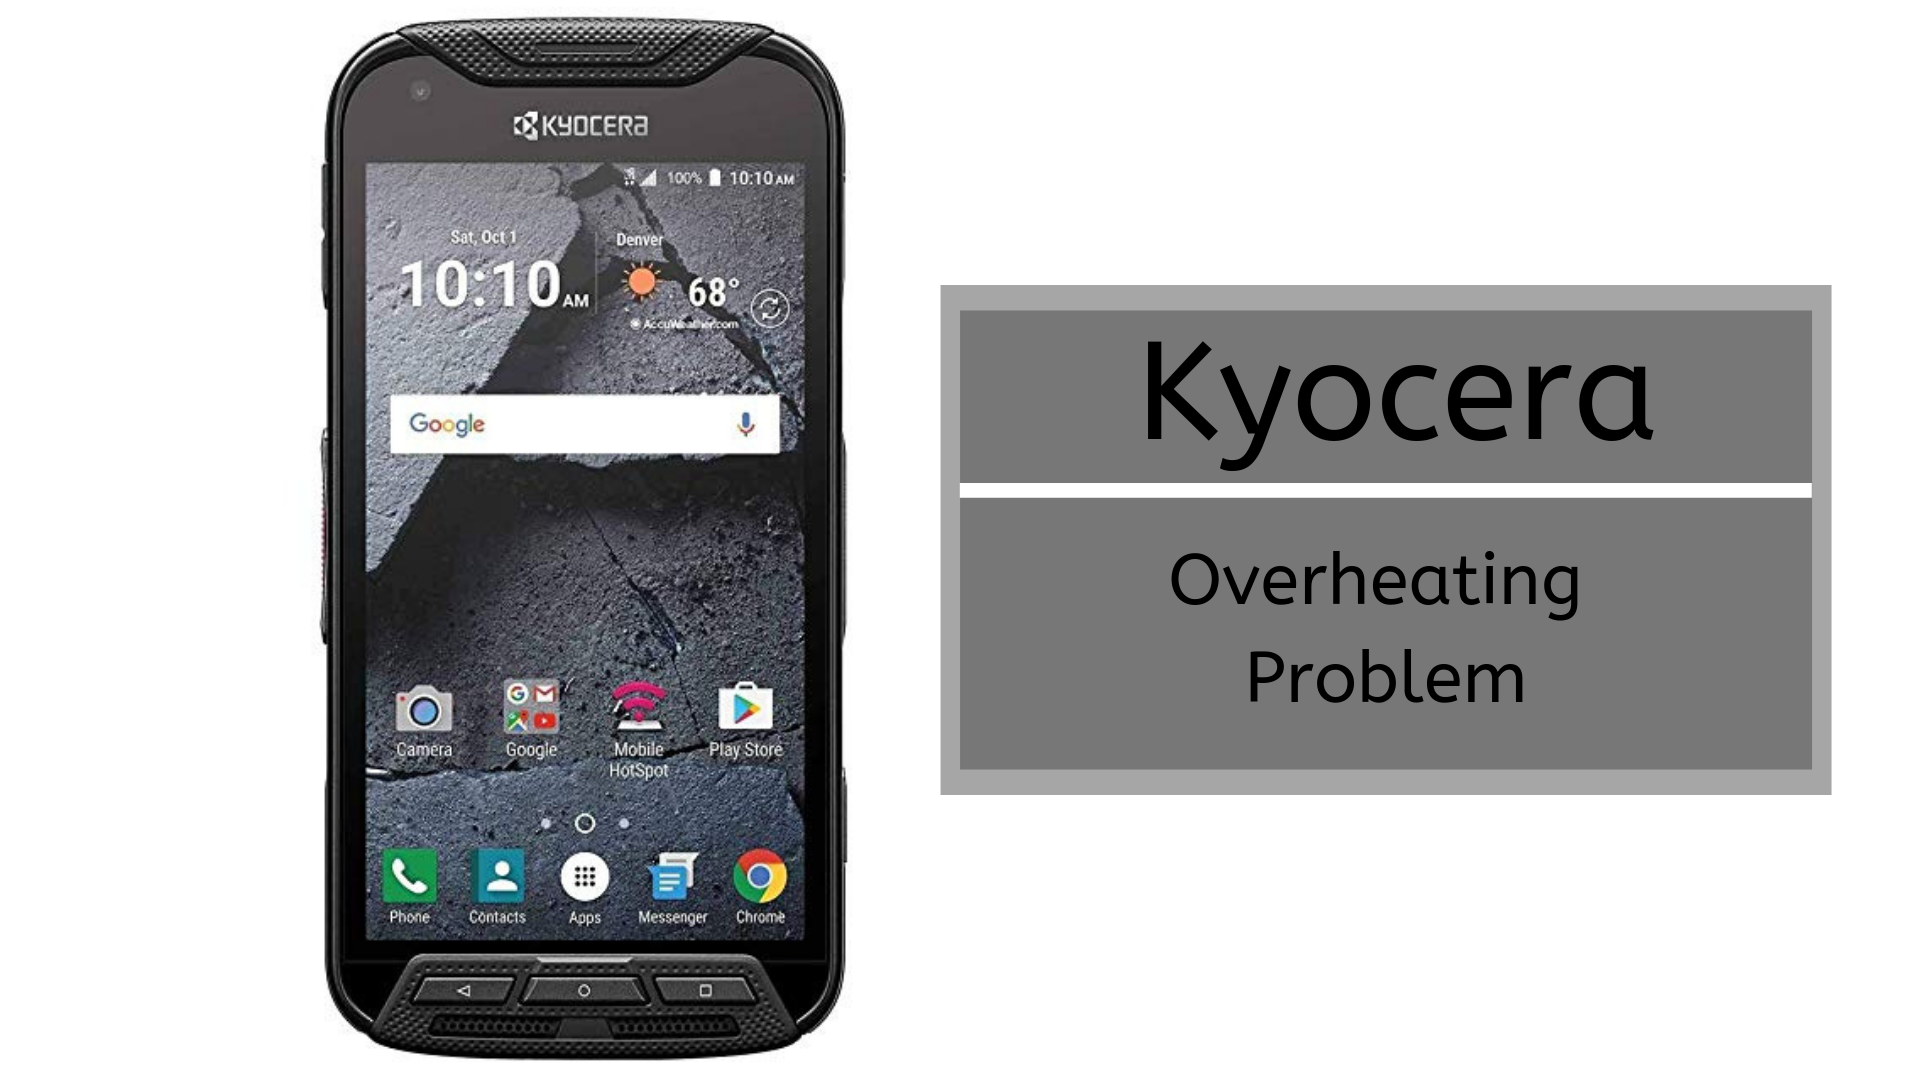 How To Fix Kyocera Overheating Problem - Troubleshooting Fix & Tips